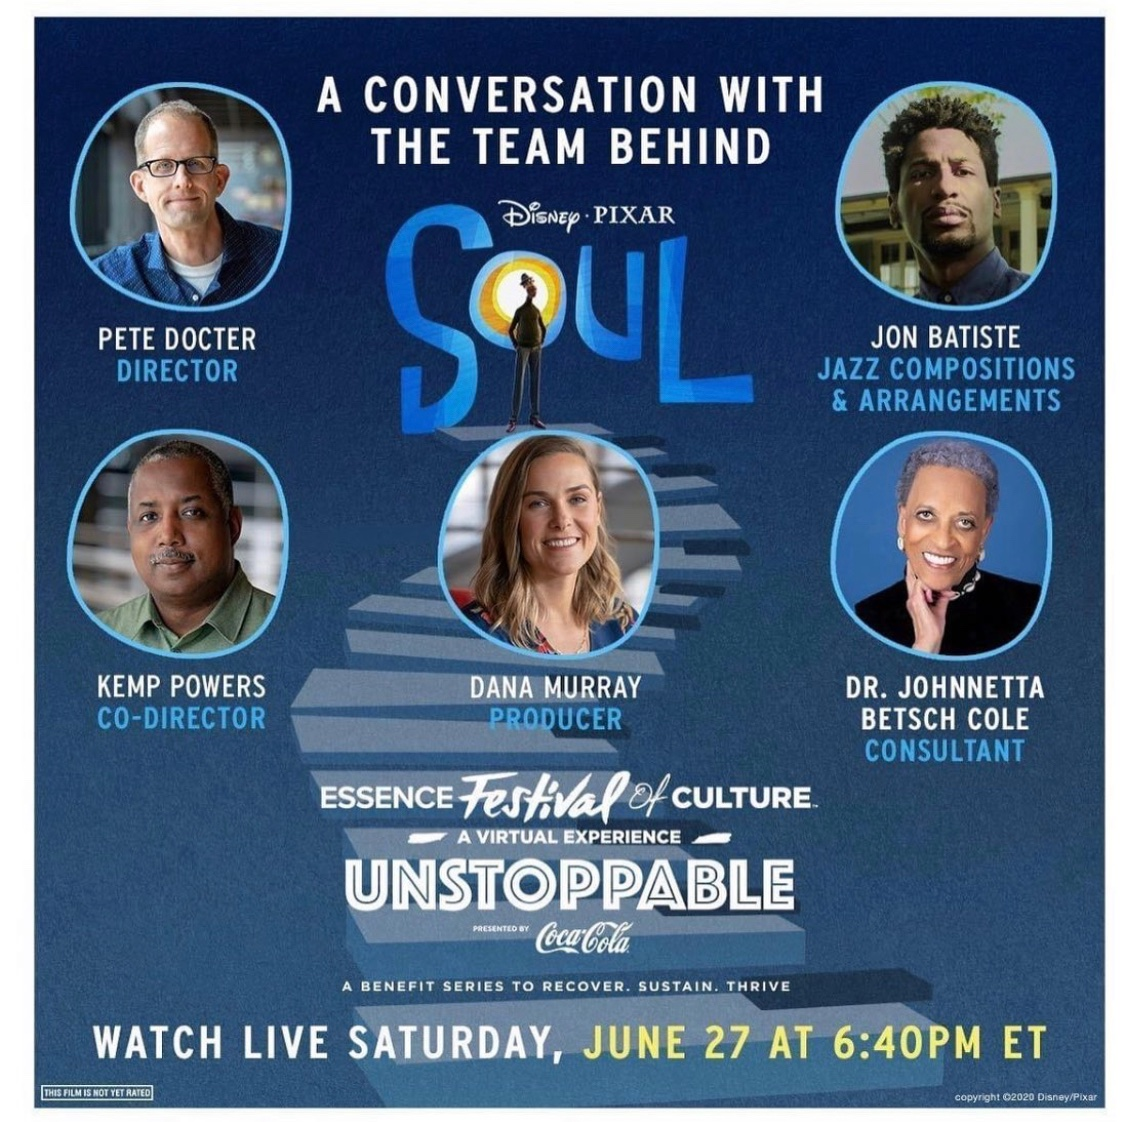 """TODAY: Tune-in to """"Finding Soul"""" a conversation with the team behind #PixarSoul at @essencefest . RSVP now & watch it live here at 6:40 PM EST - bit.ly/EssenceFestSoul"""